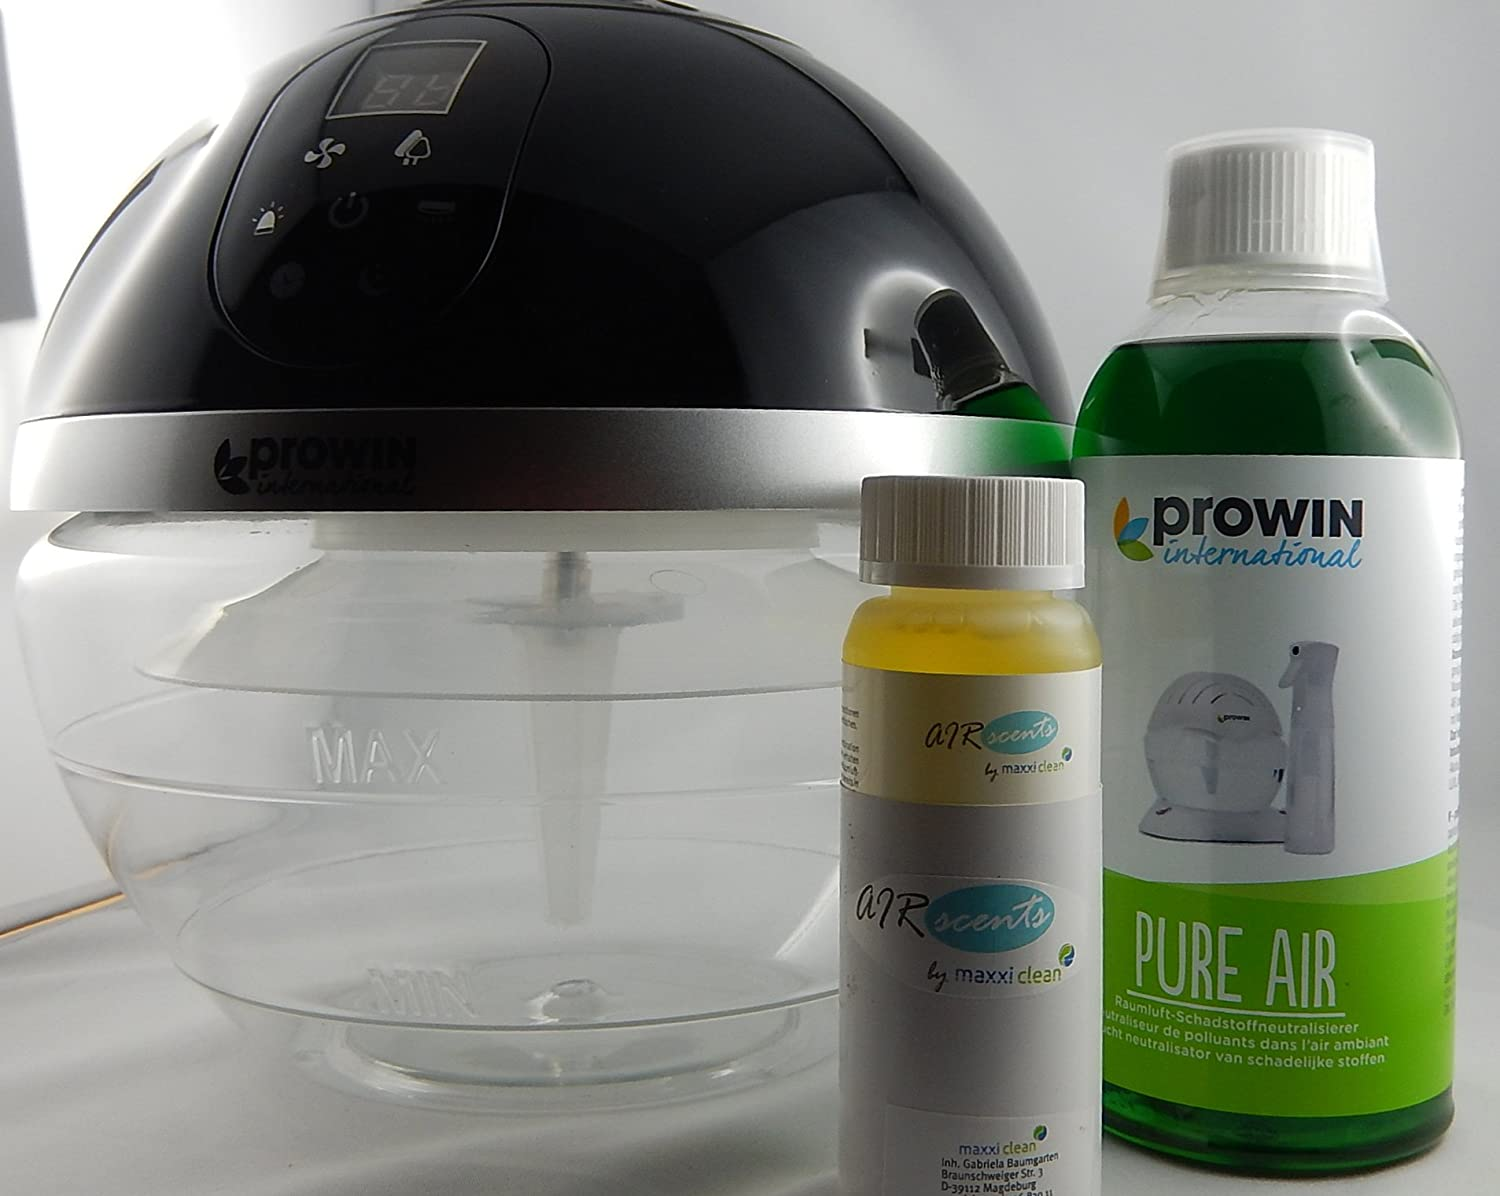 Prowin air bowl alleskoenner - in apotheke - test - Bewertung